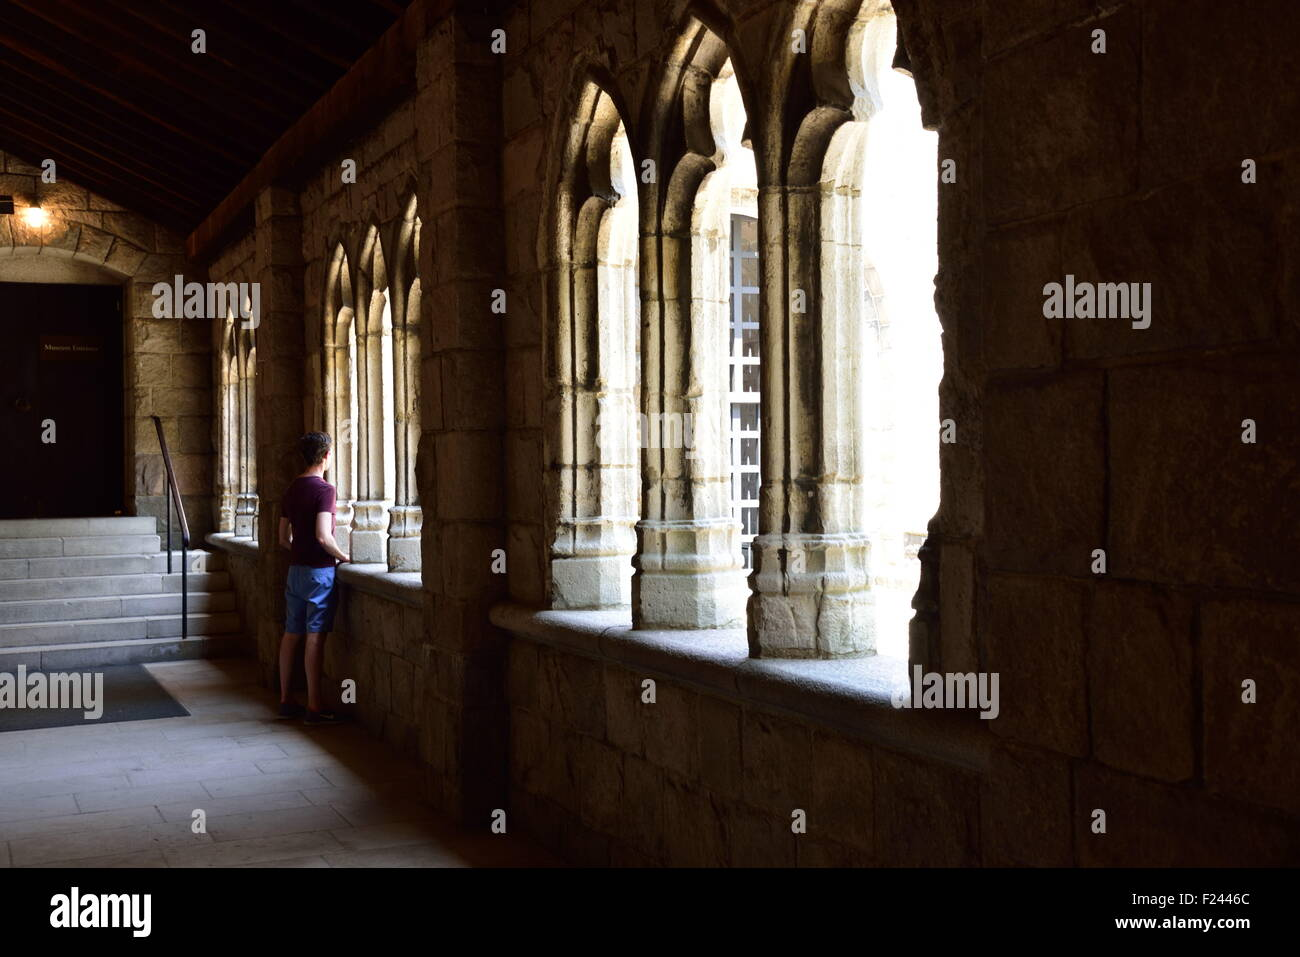 one of the fist cloysters inside the natural history museum separate building in uptown Manhattan - Stock Image